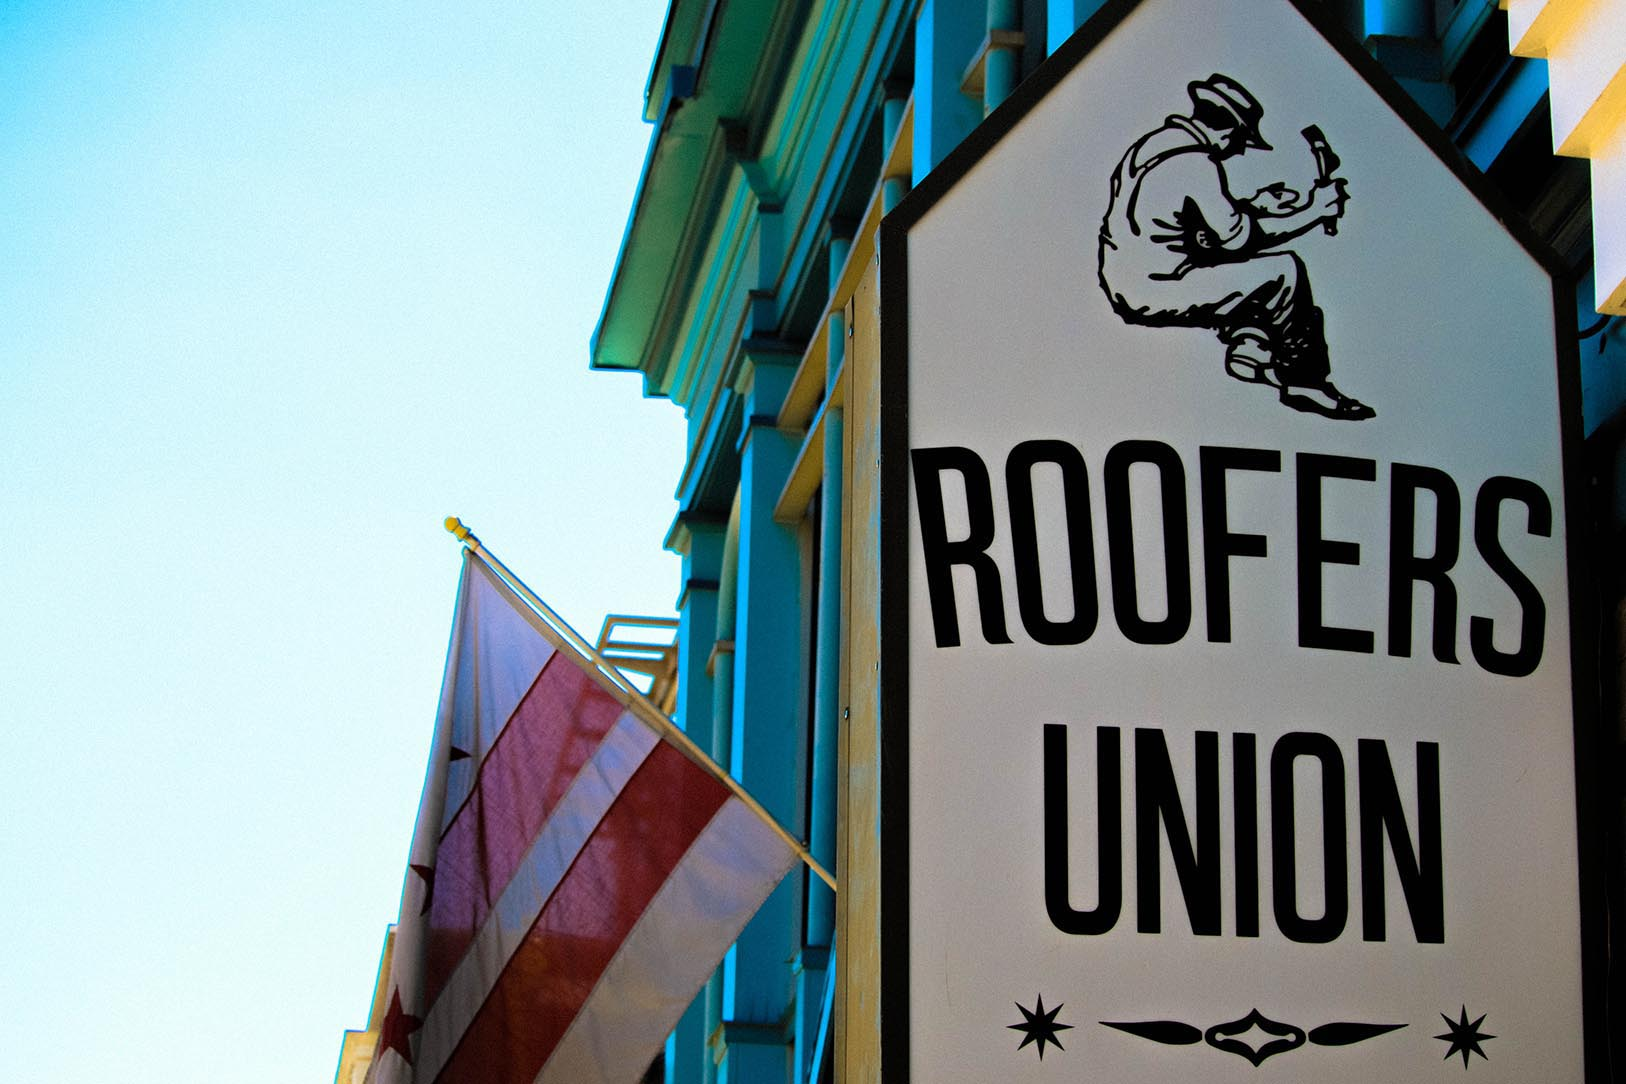 Roofers Union in Adams Morgan, Washington, DC